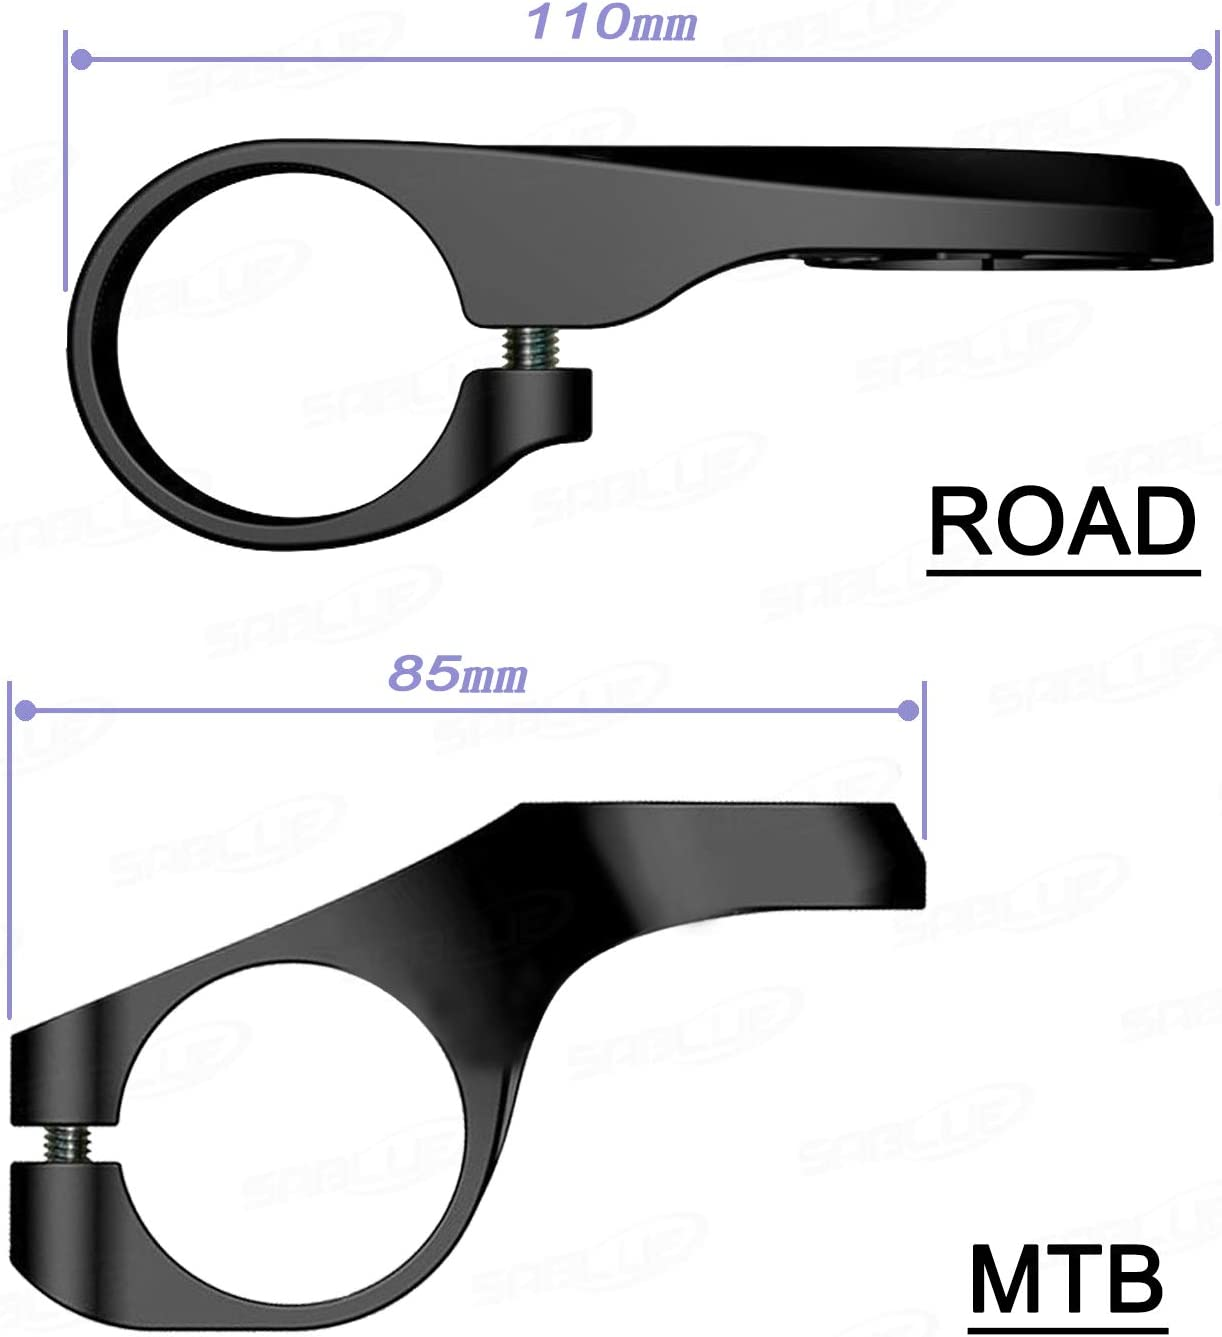 SABLUE Bicycle Computer Extended Mount Bike Handlebar for garminedge 200 500 800 510 810 820 1000 GPS Support Road MTB 31.8mm 25.4mm Long